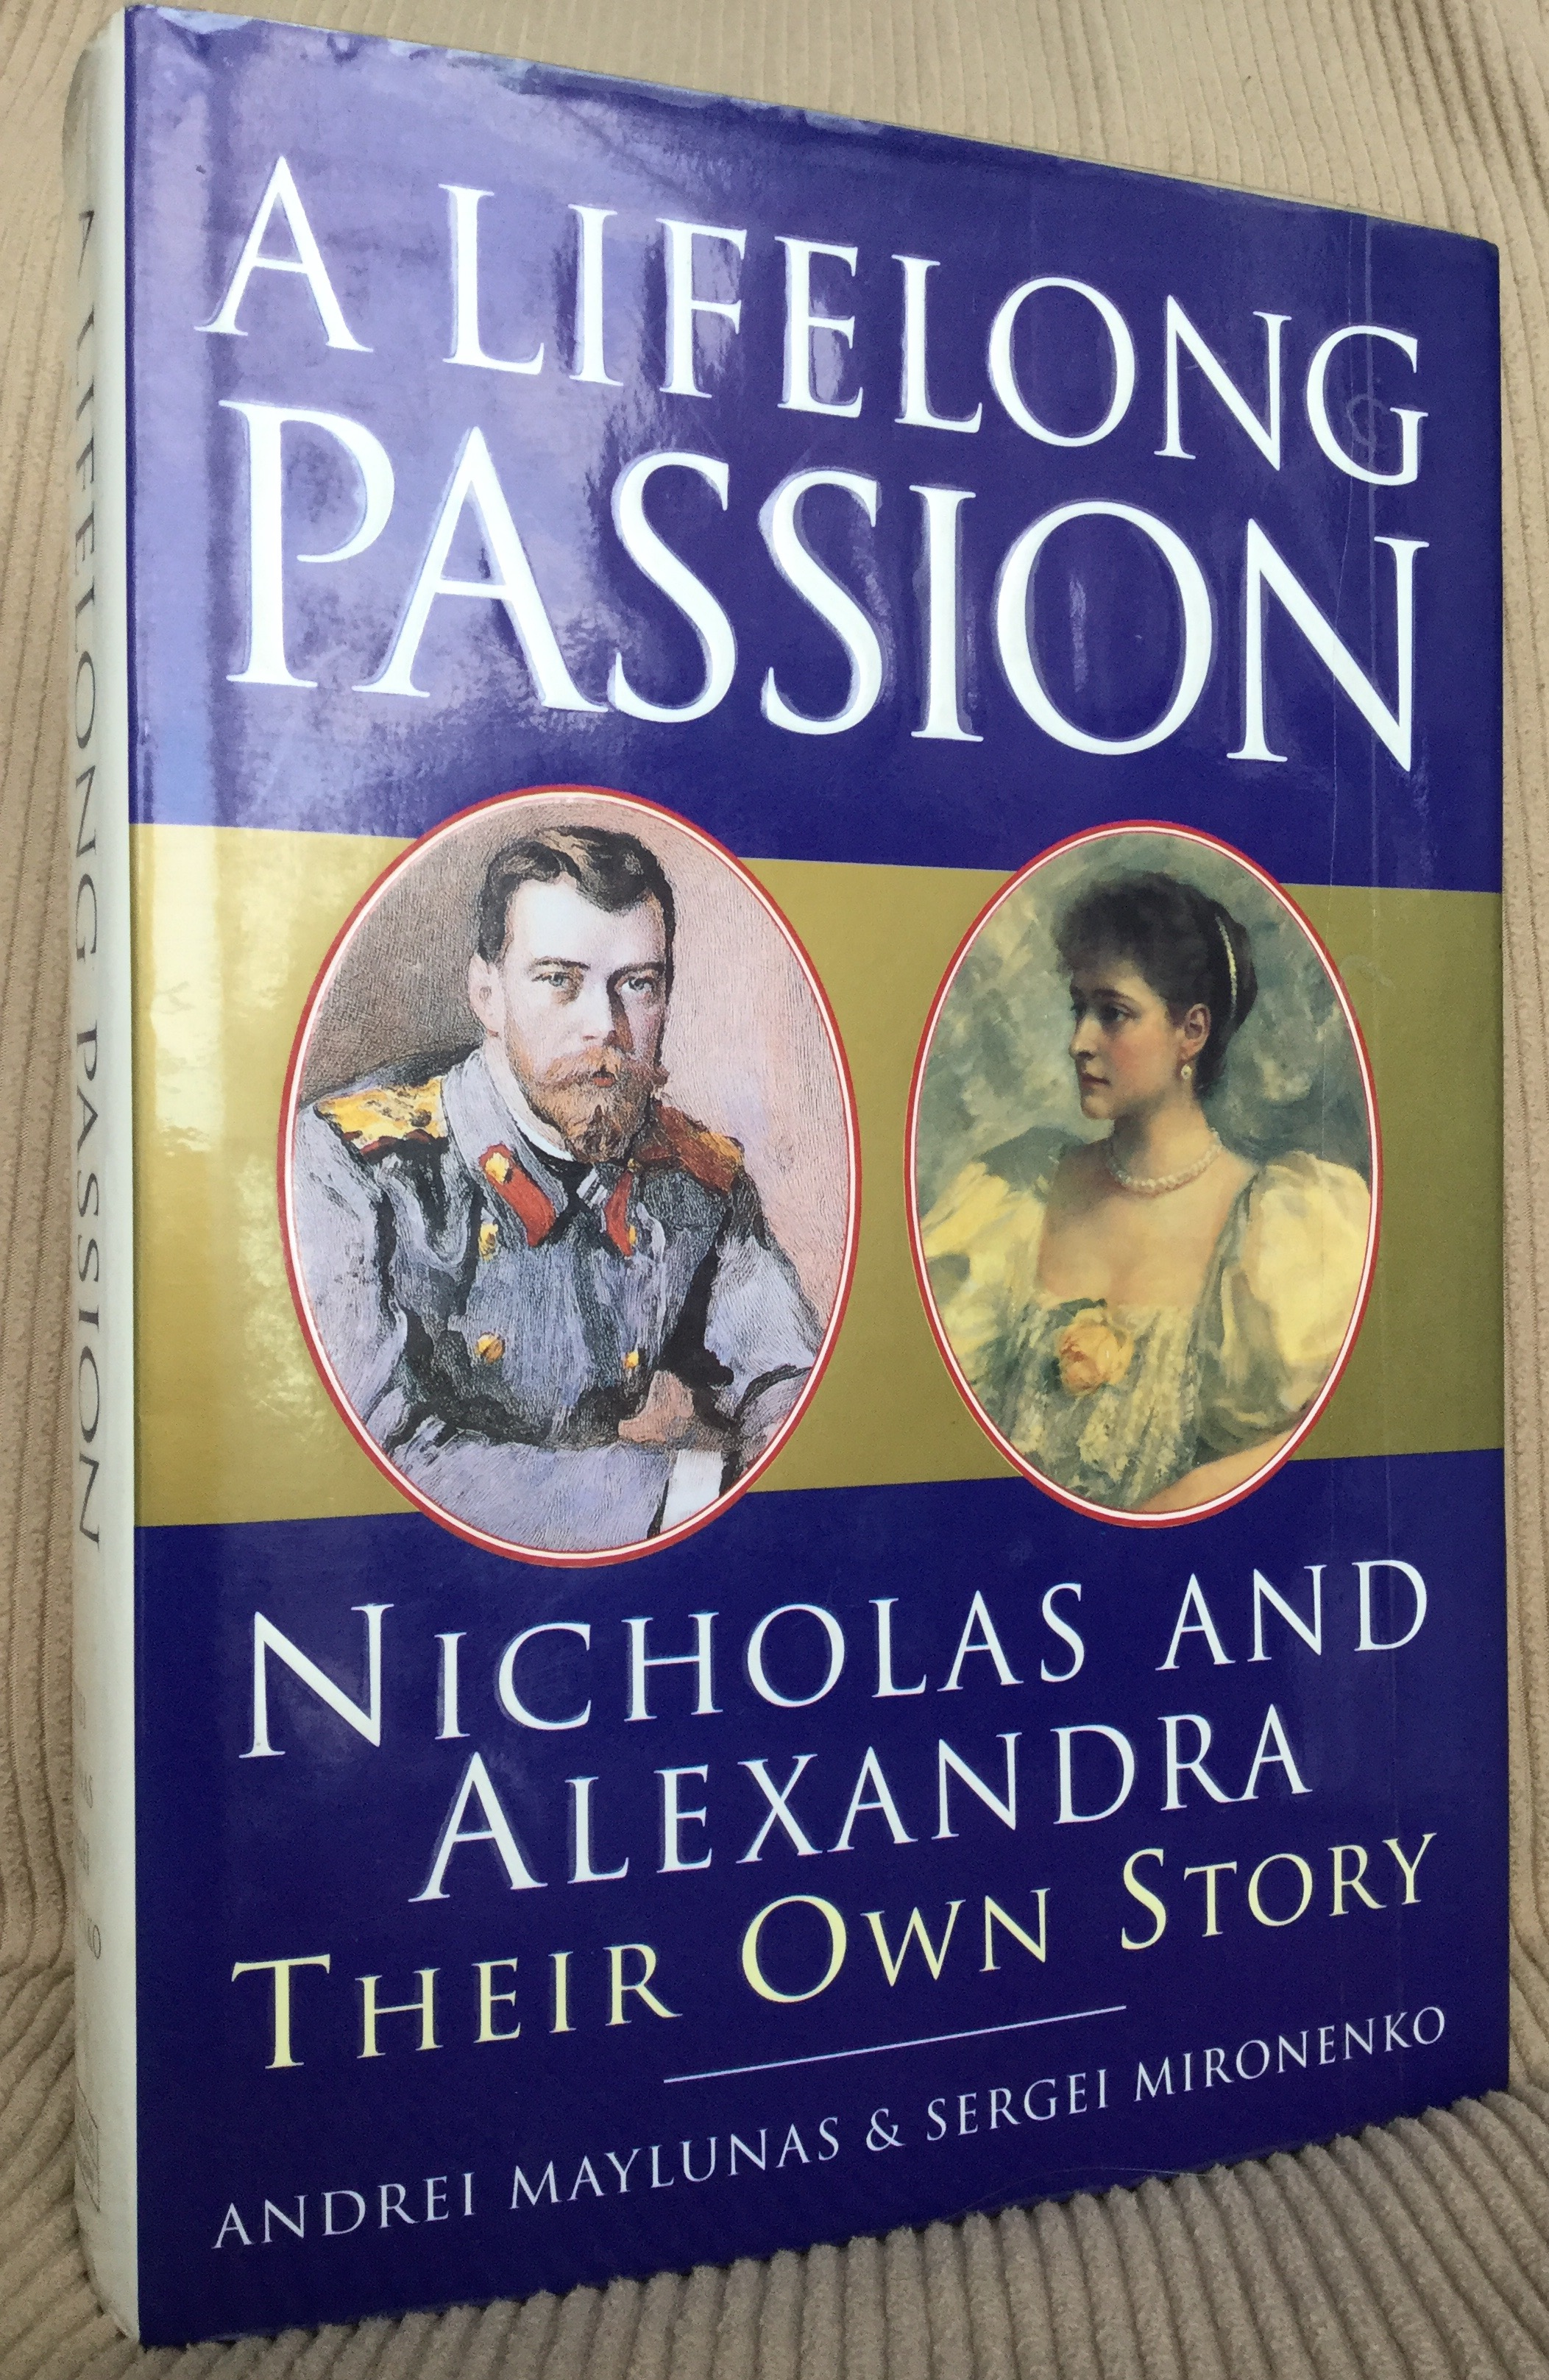 Image for A Lifelong Passion: Nicholas & Alexandra Their Own Story